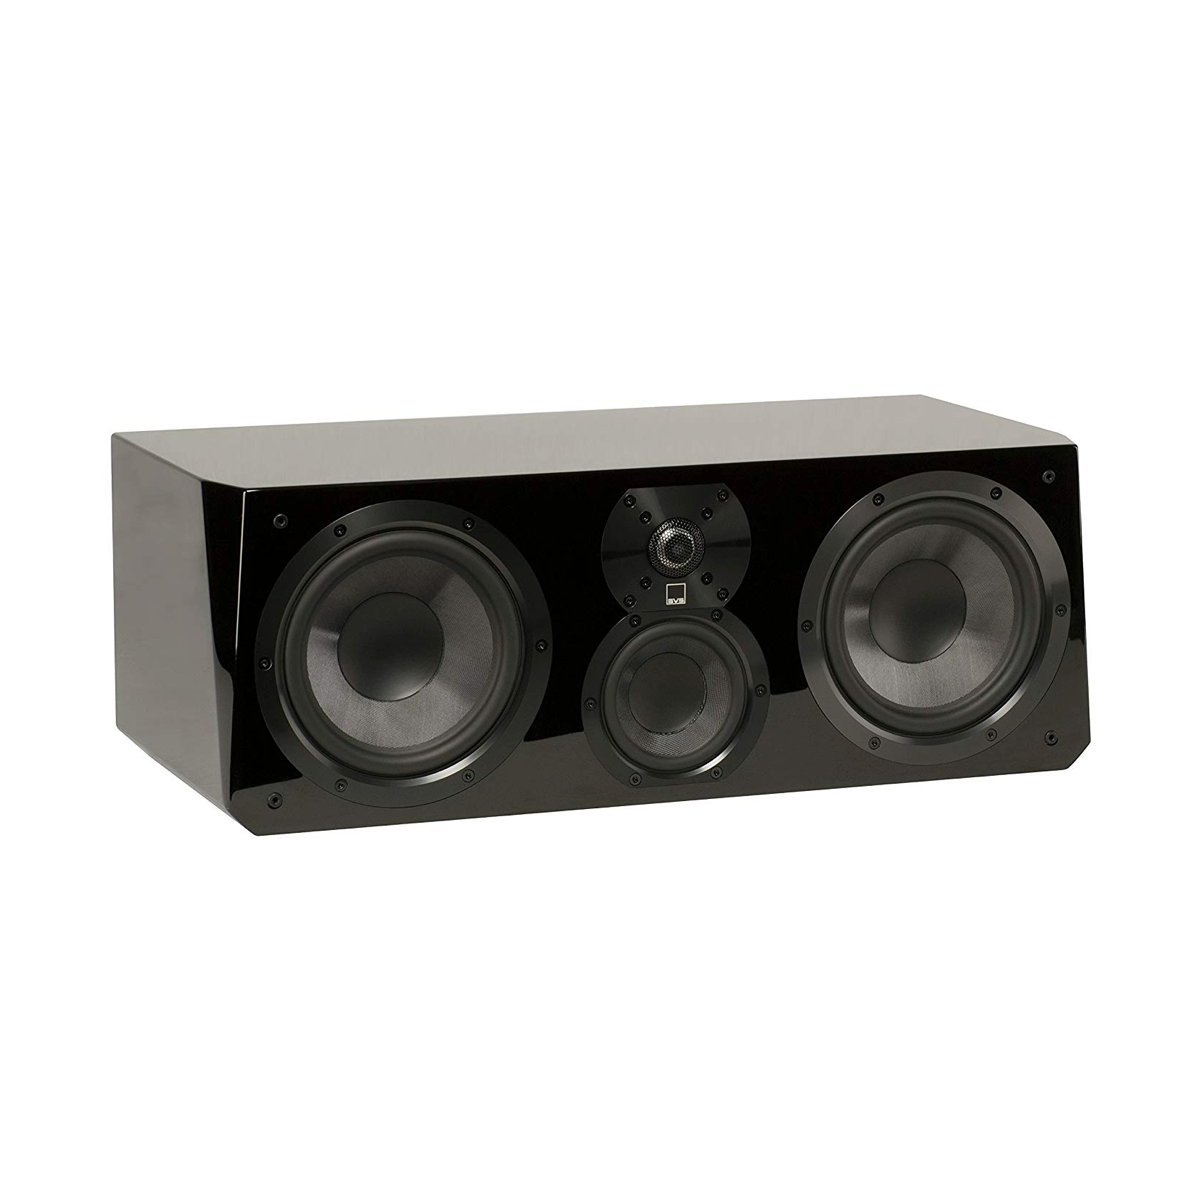 SVS Sound Ultra Centre Speaker - Piano Black - AVStore.in